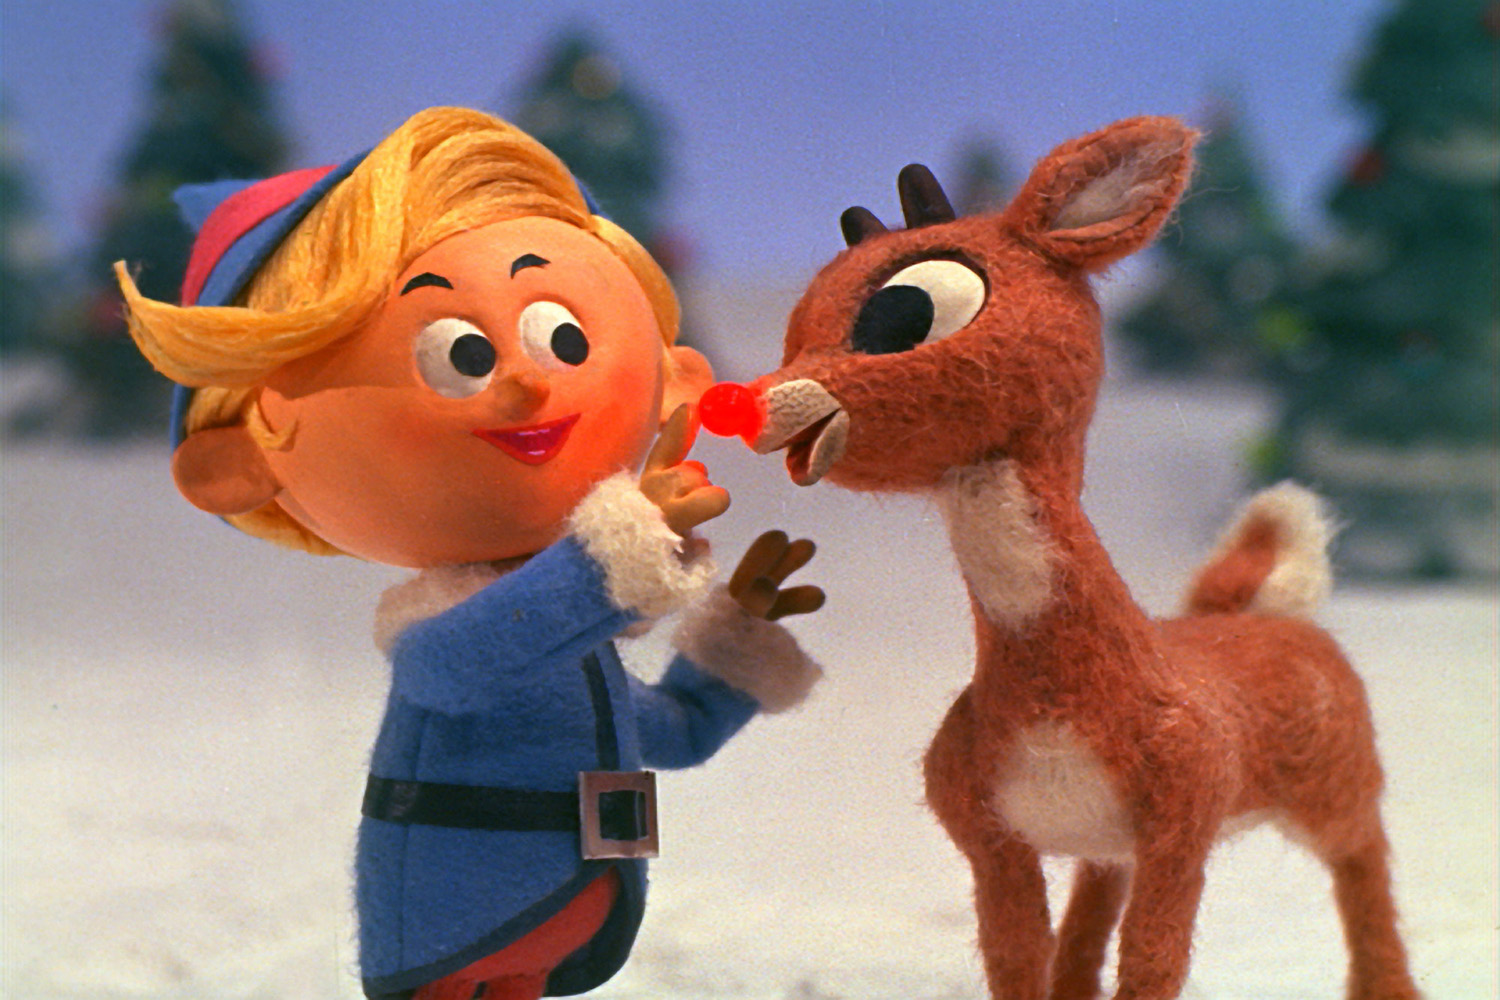 Rudolph the Red-Nosed Reindeer is a holiday classic. In this clip of the movie, Hermey the elf is with mistreated Rudolph.